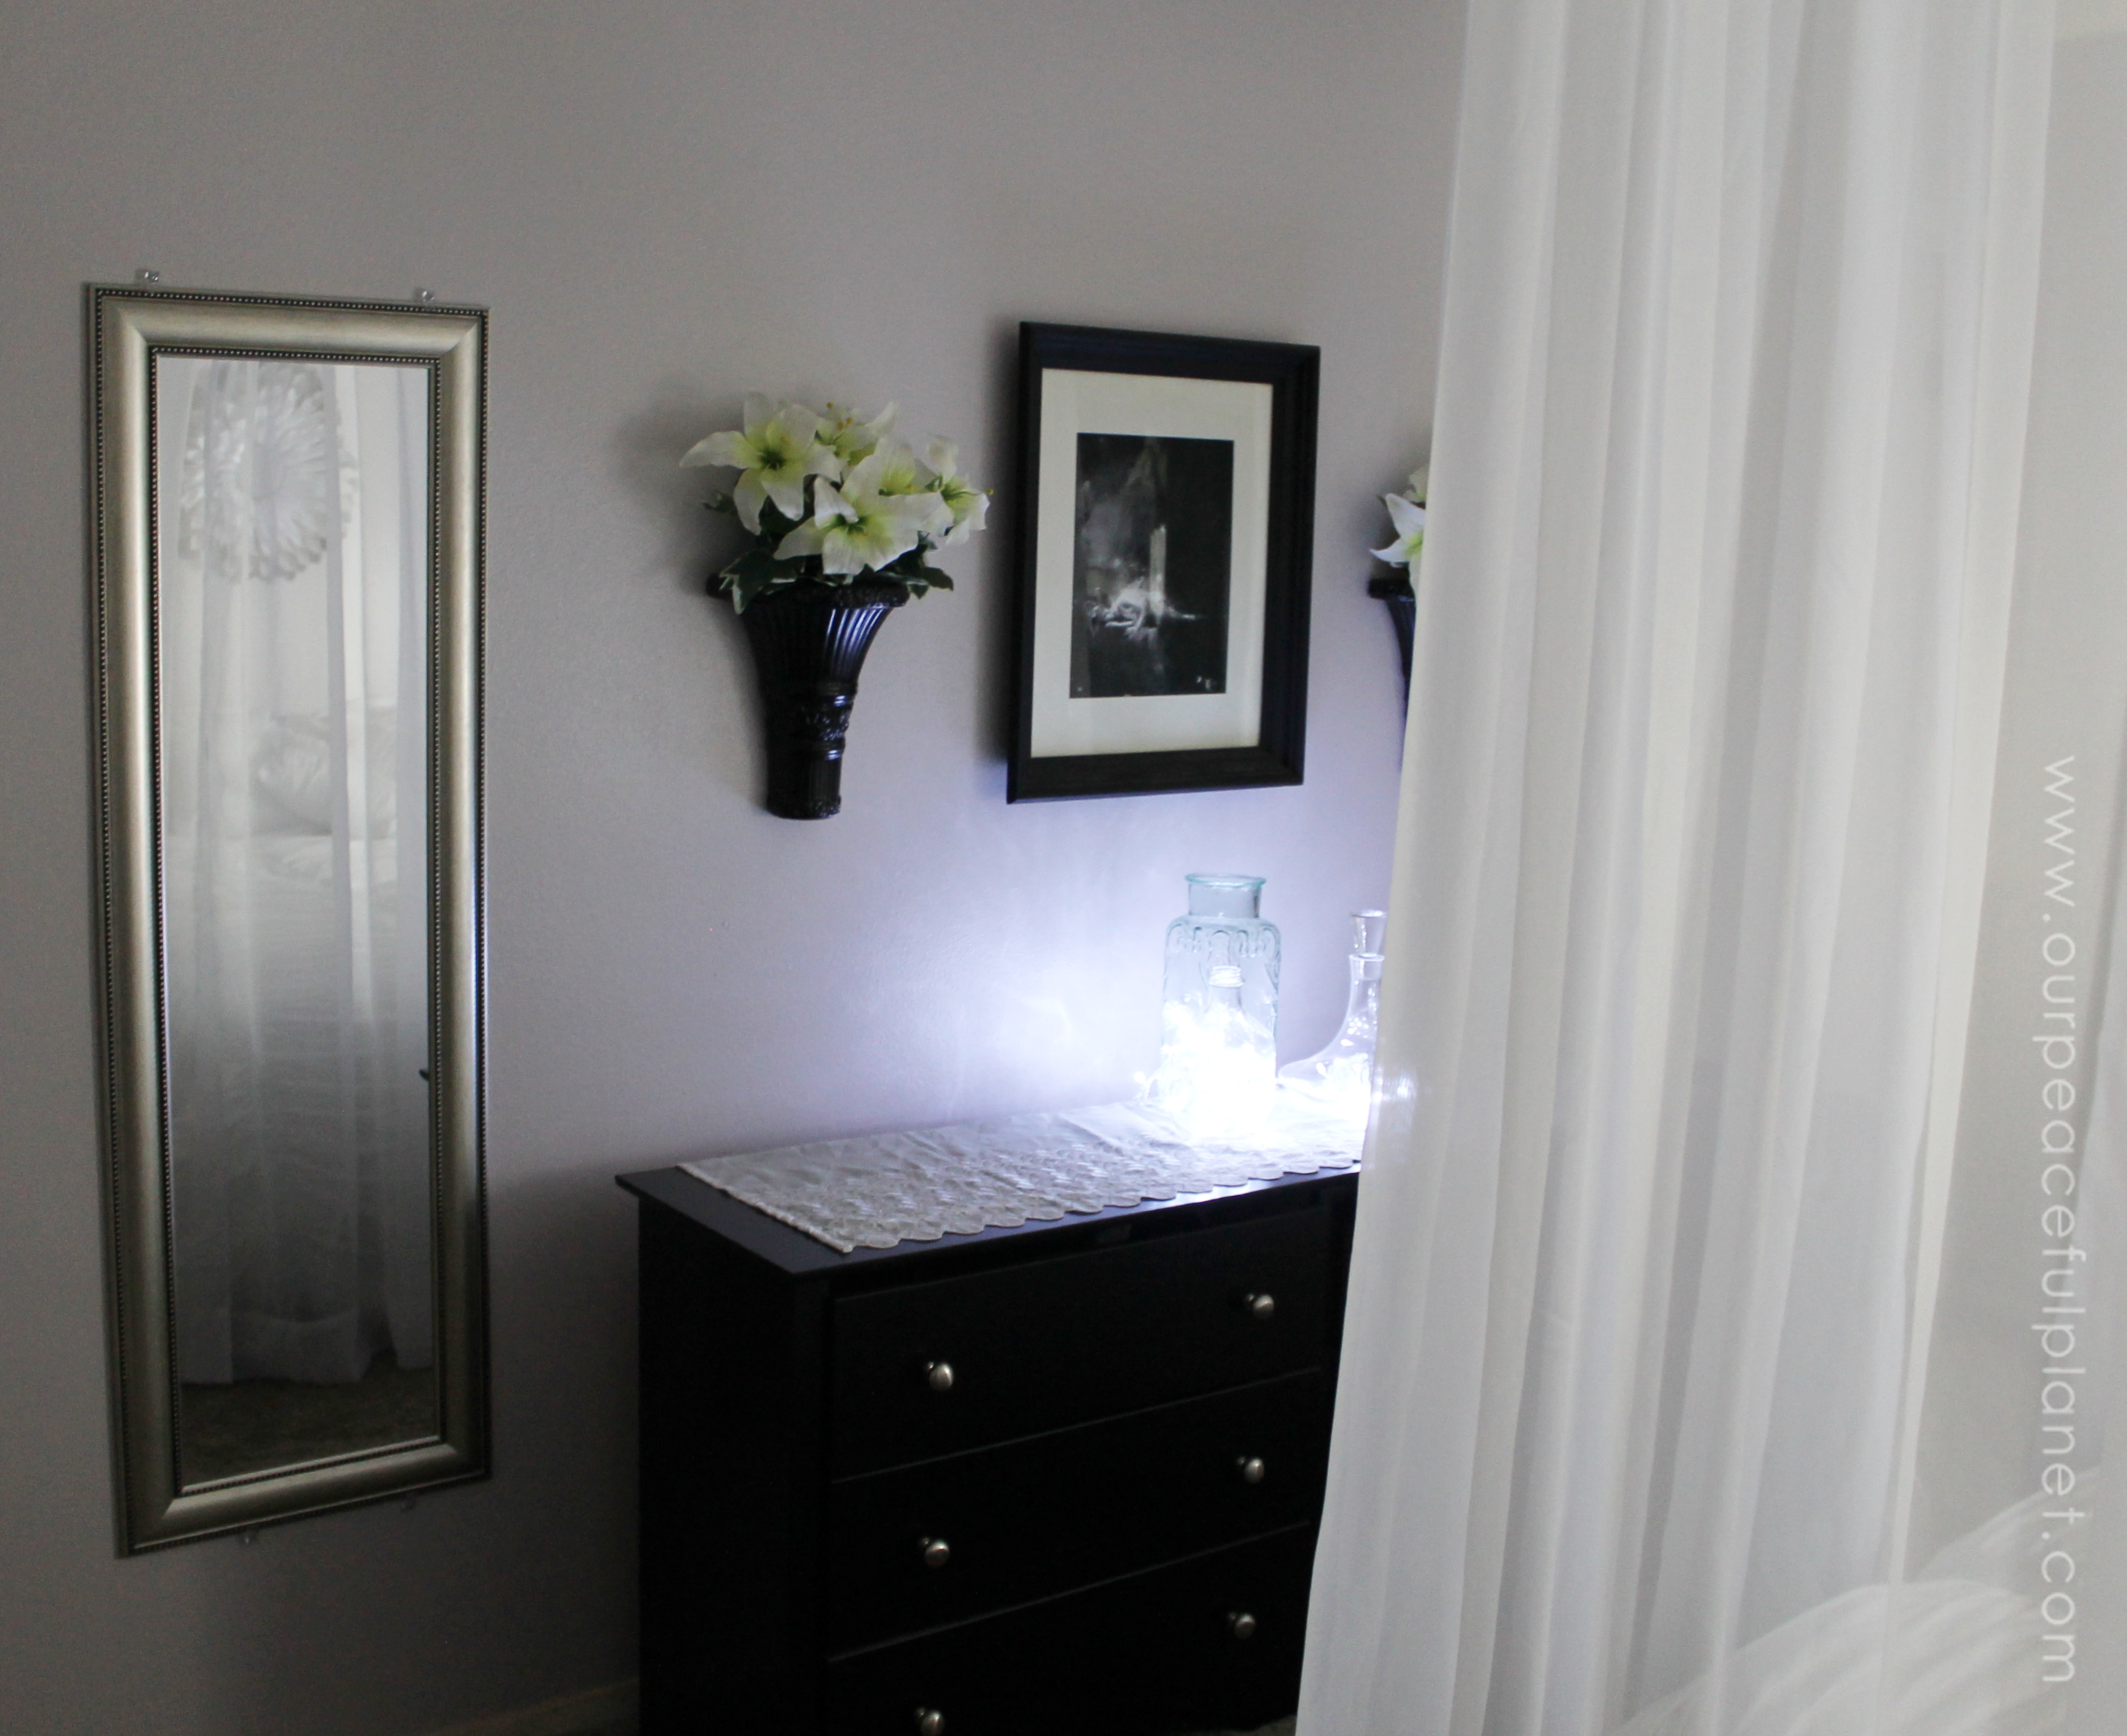 Get inspired with the final gorgeous reveal in our Budget Bedroom Makeover Series! We'll also tell you what the total cost was for us to redo the bedroom.